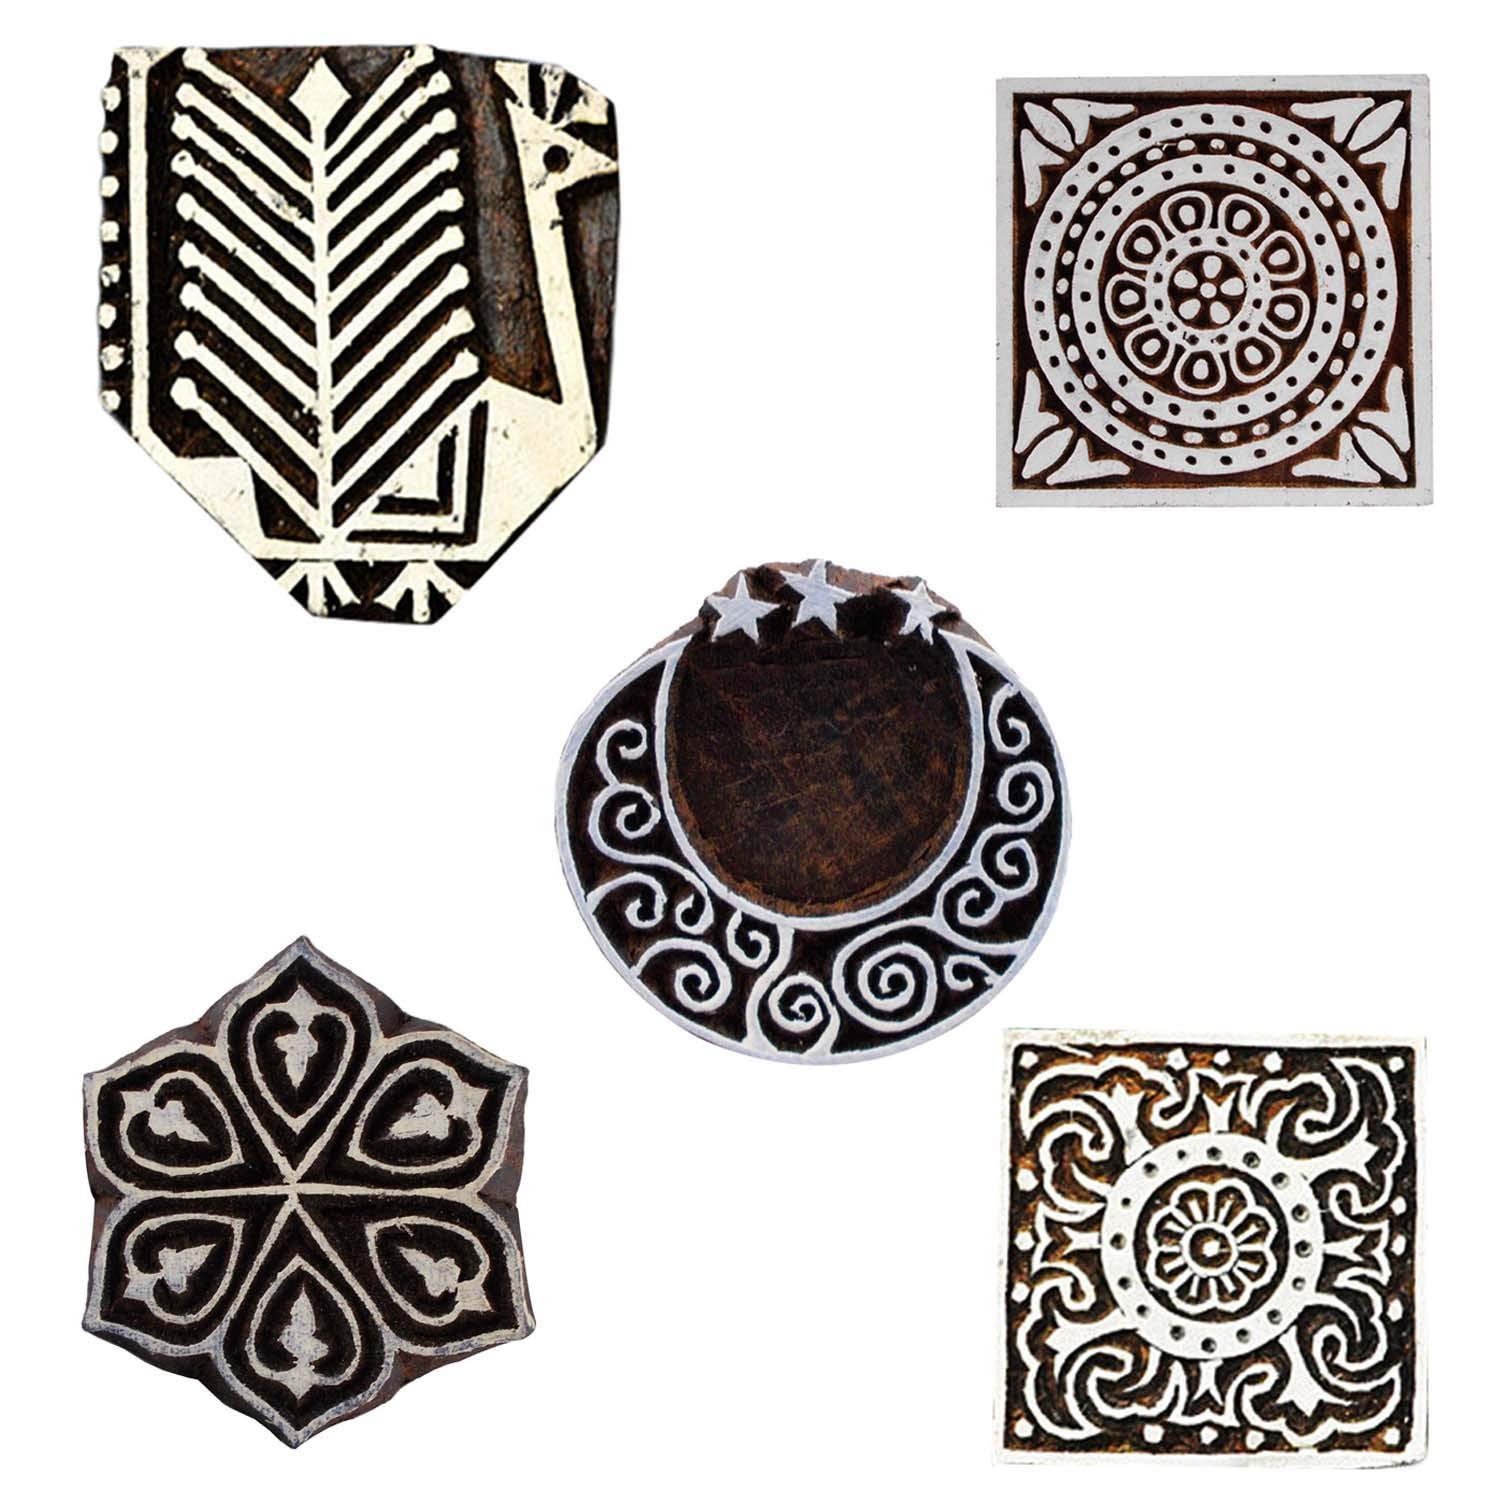 Printing Block Indian Floral, Moon Star, Peacock and Square Craft Wooden Stamps Textile Scrapbook Blocks Set of 5